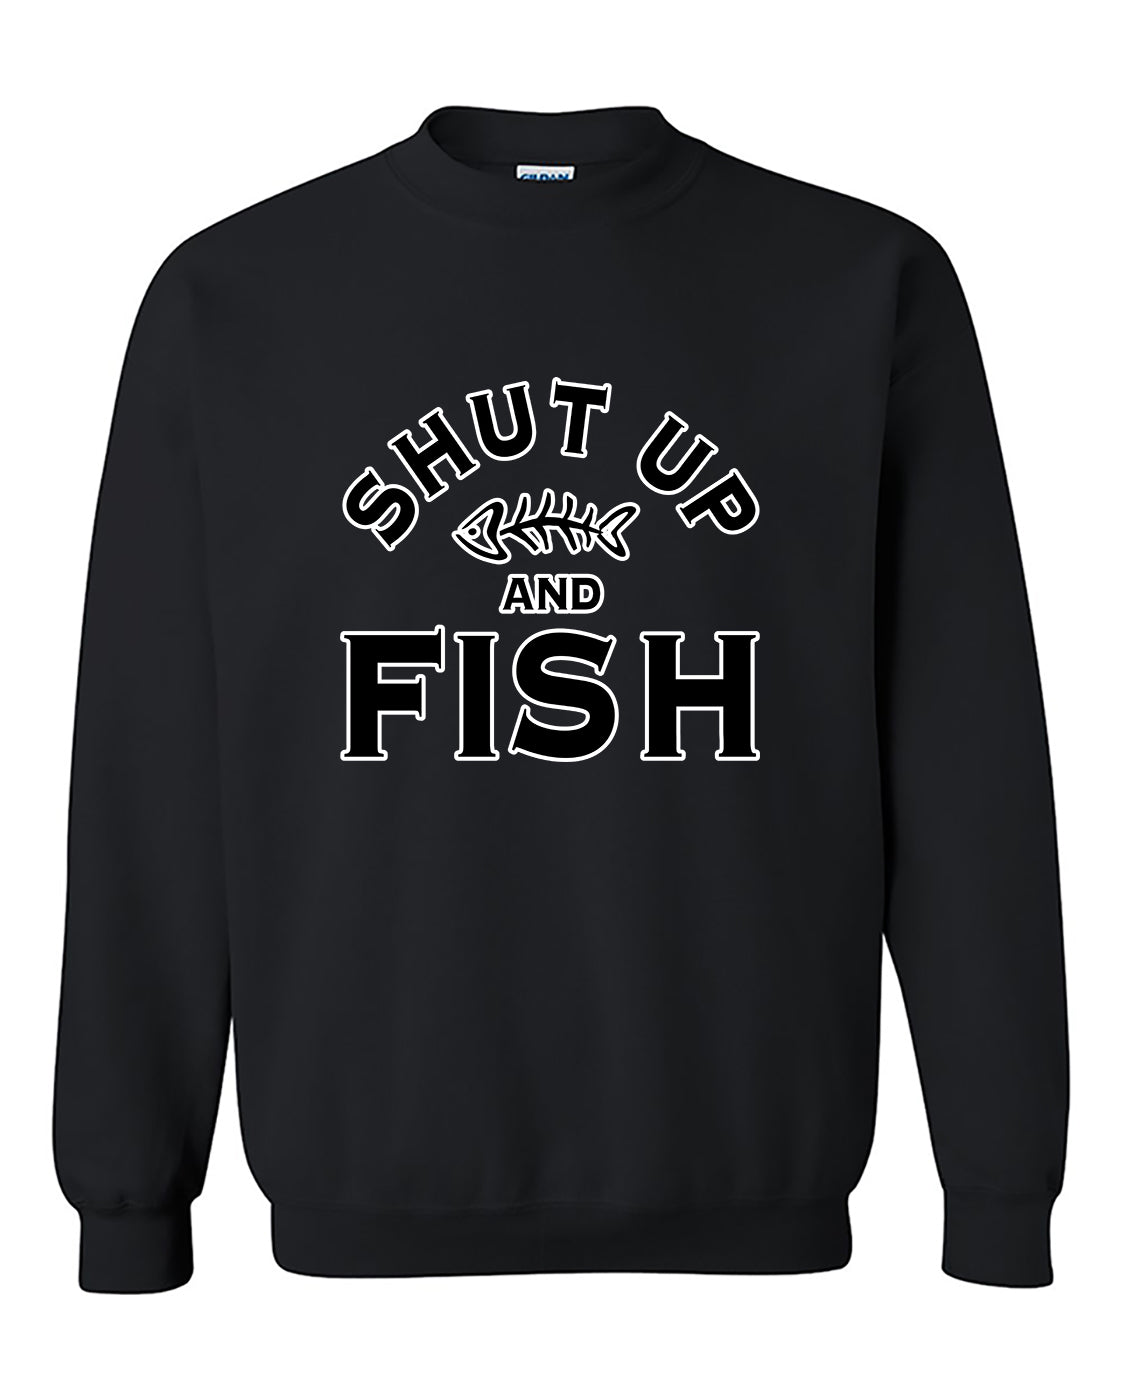 Shut Up And Fish Funny Fishing Crewneck Sweater